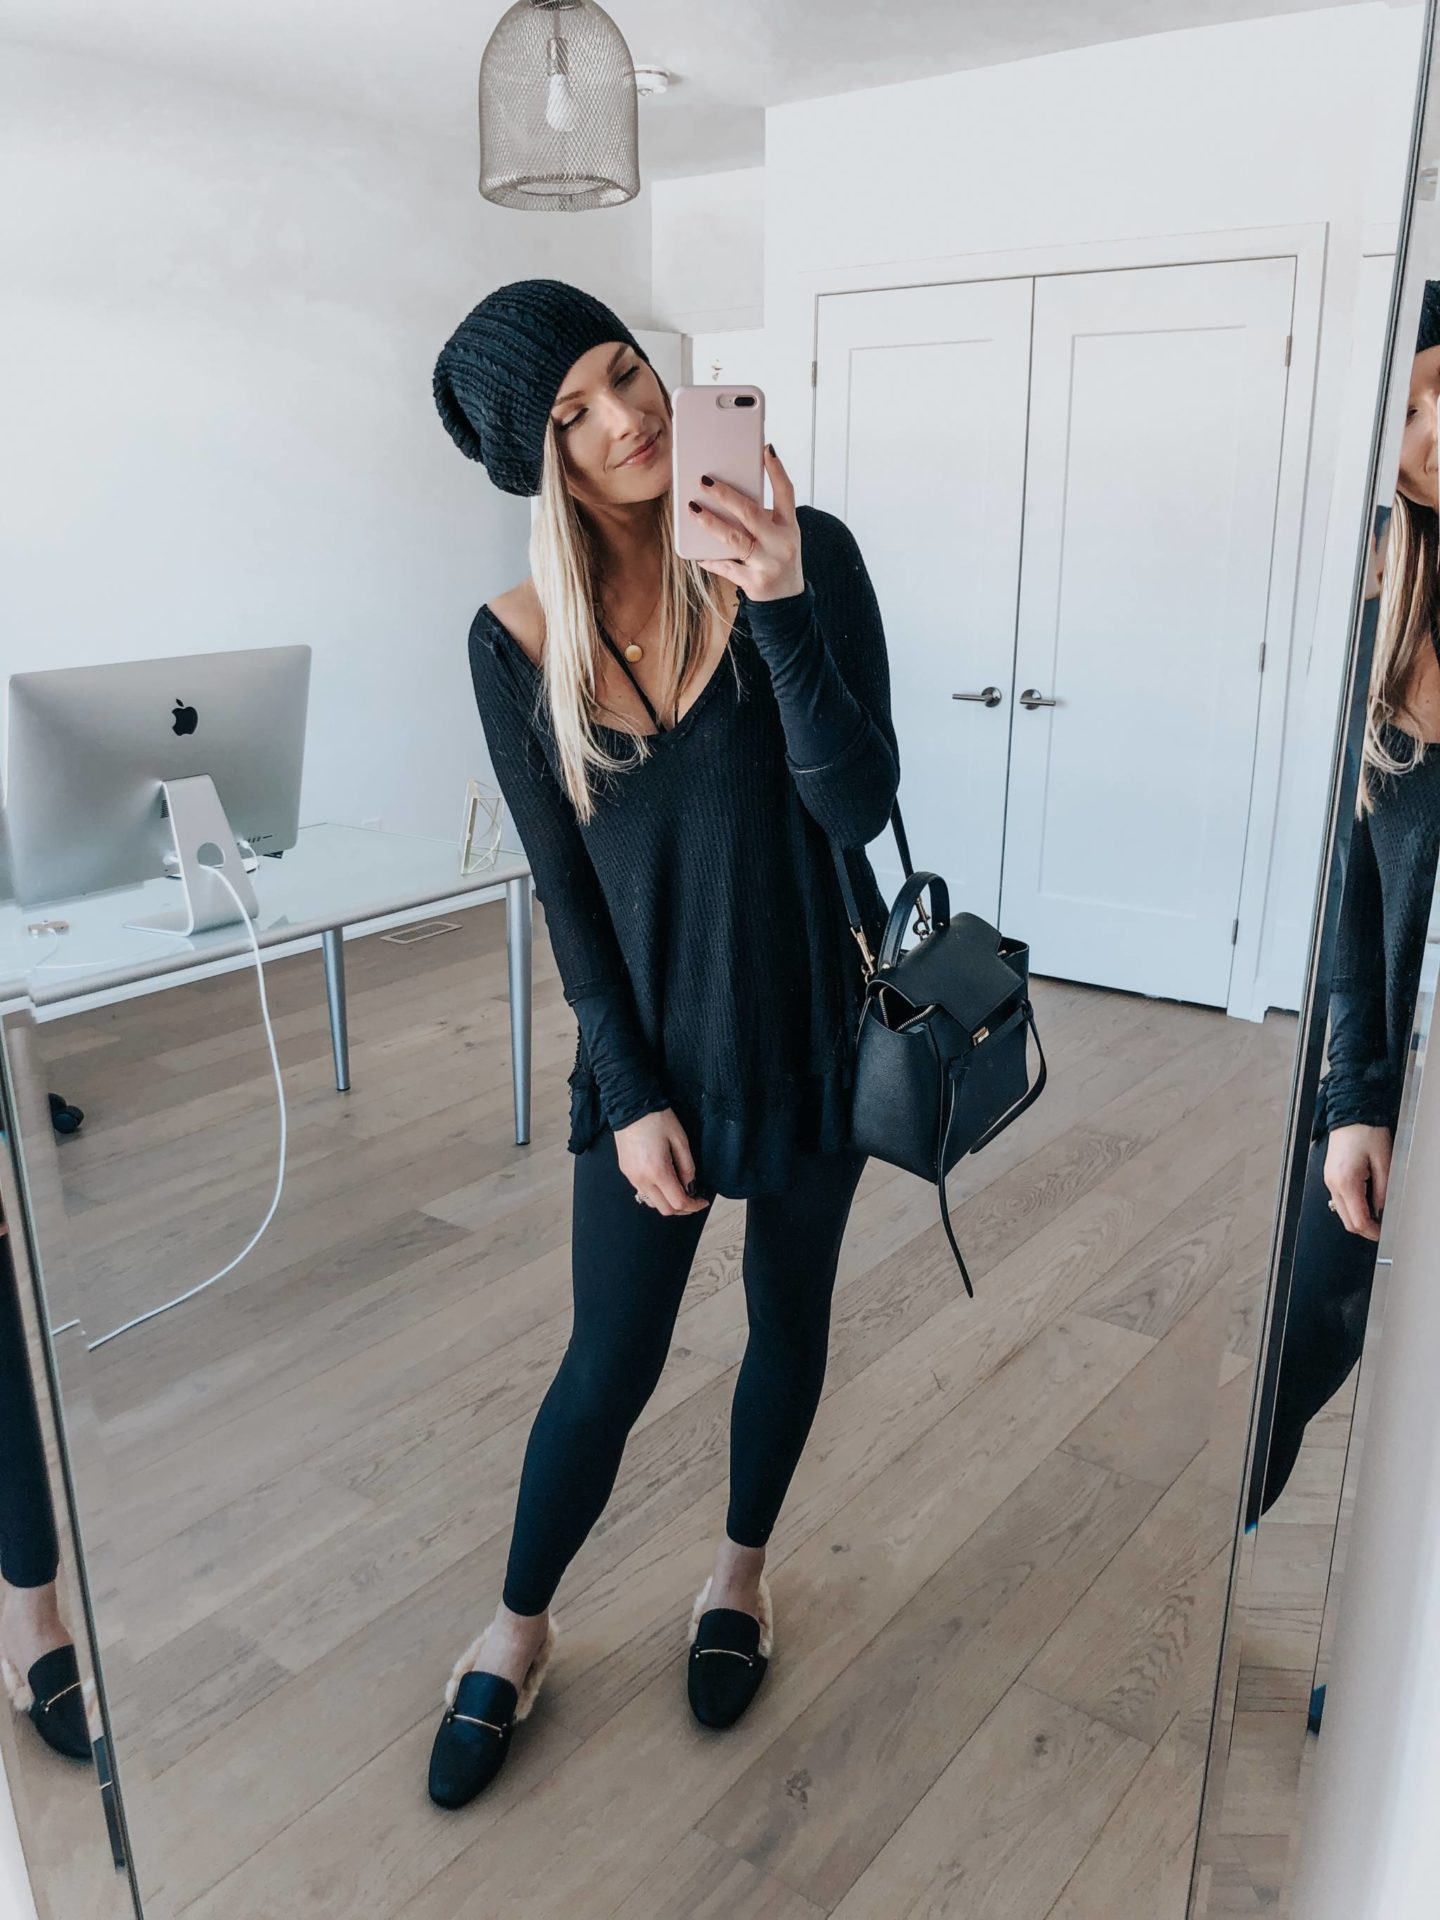 mirror selfie of fashion blogger wearing casual all black outfit